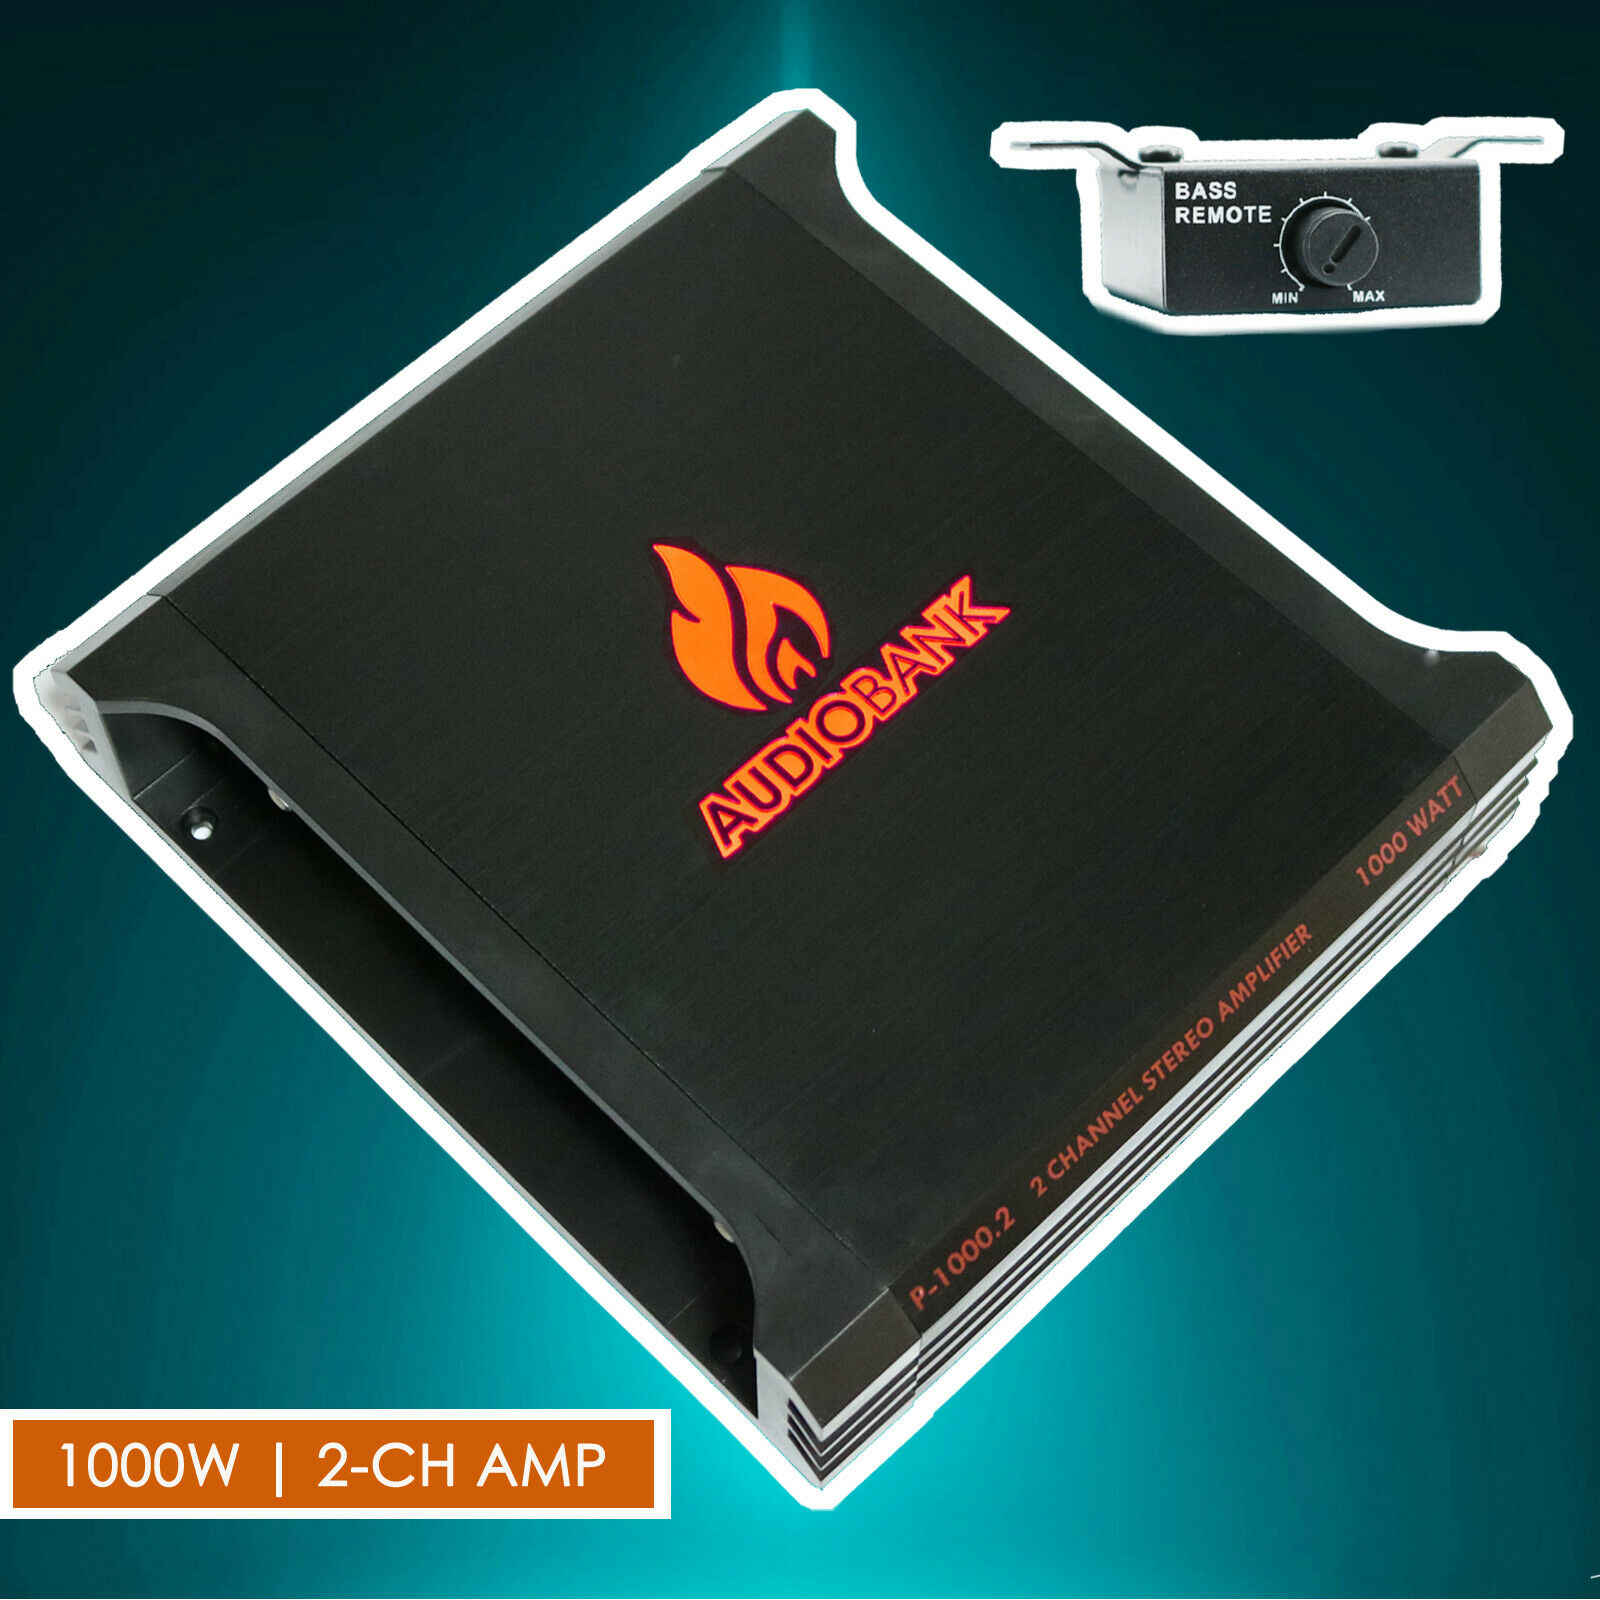 AUDIOBANK P1500.1 1500W 2-Ohm Stable 2 Channel Stereo Amplifier